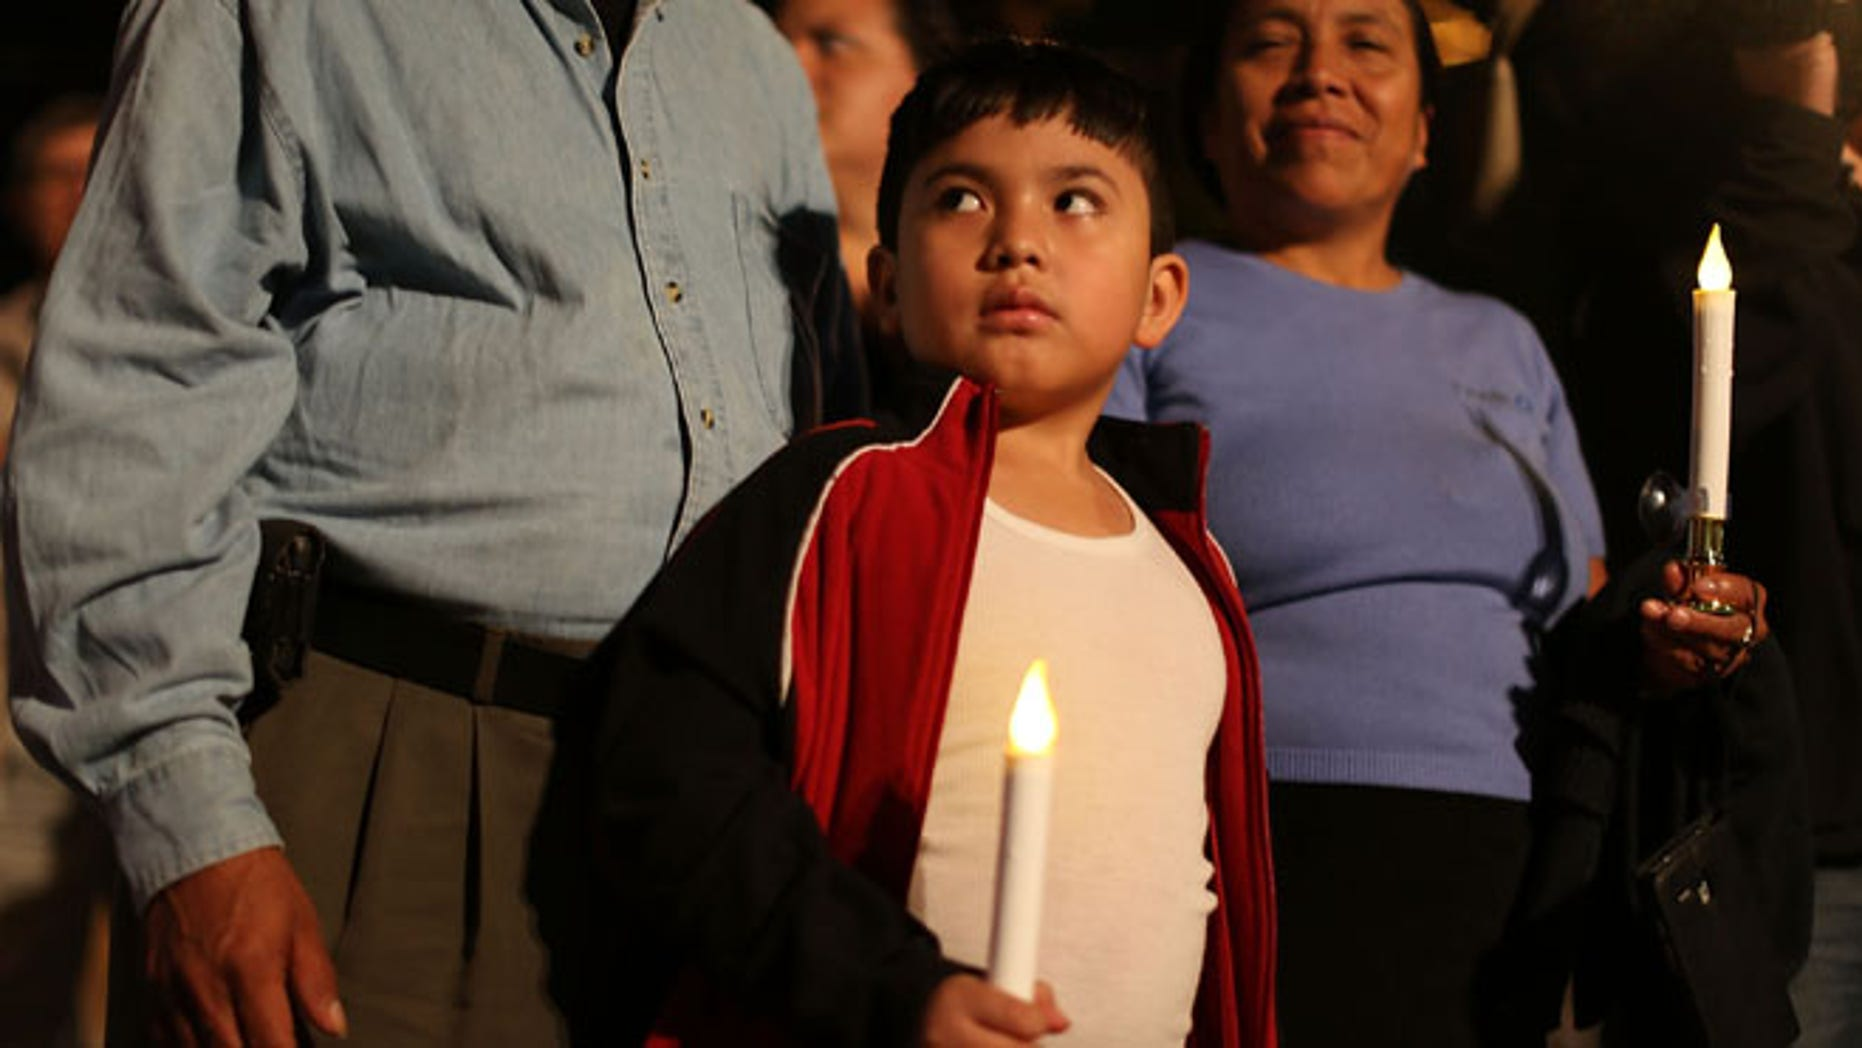 HOMESTEAD, FL - JANUARY 06:  Rodrigo Hernandez, whose family is originally from Guatemala, attends a vigil with his family to protest against the deportation of undocumented immigrants on January 6, 2016 in Homestead, Florida. President Barack Obama's administration has begun a series of large-scale raids against hundreds of undocumented immigrants across the US, which is generating outrage among pro-immigrant groups who reject the measure.  (Photo by Joe Raedle/Getty Images)